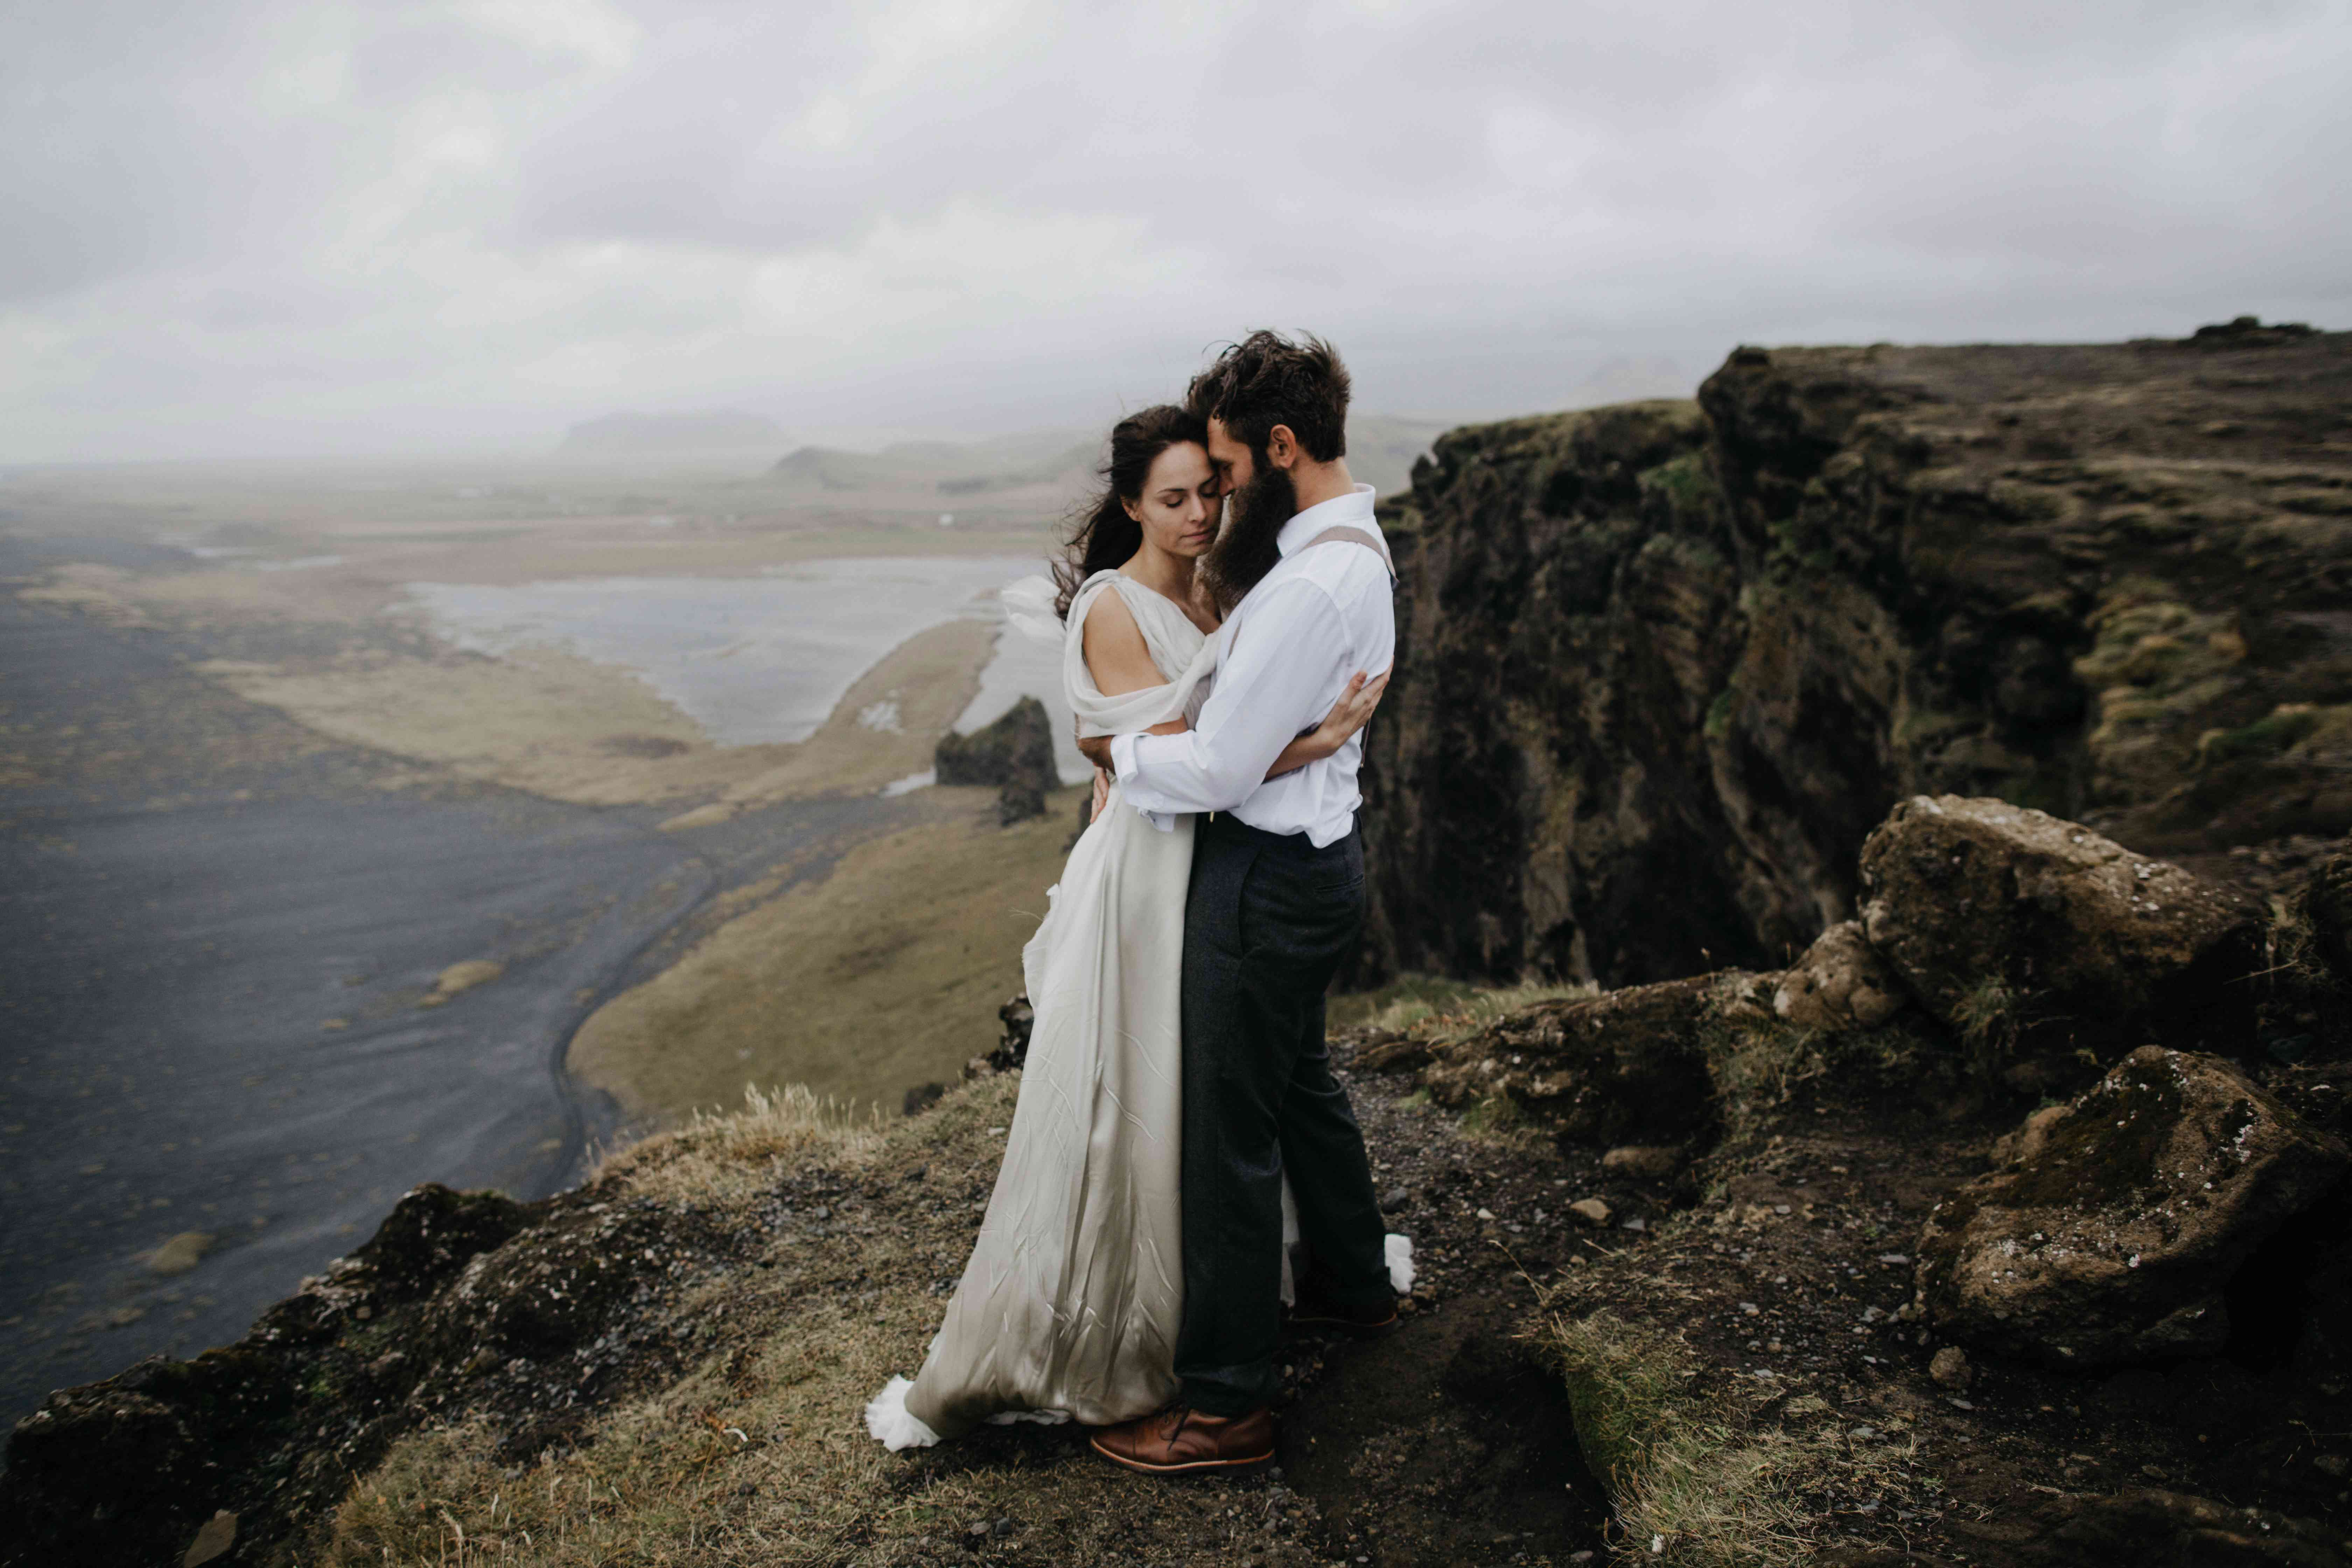 Couple hugging on a clif in Iceland